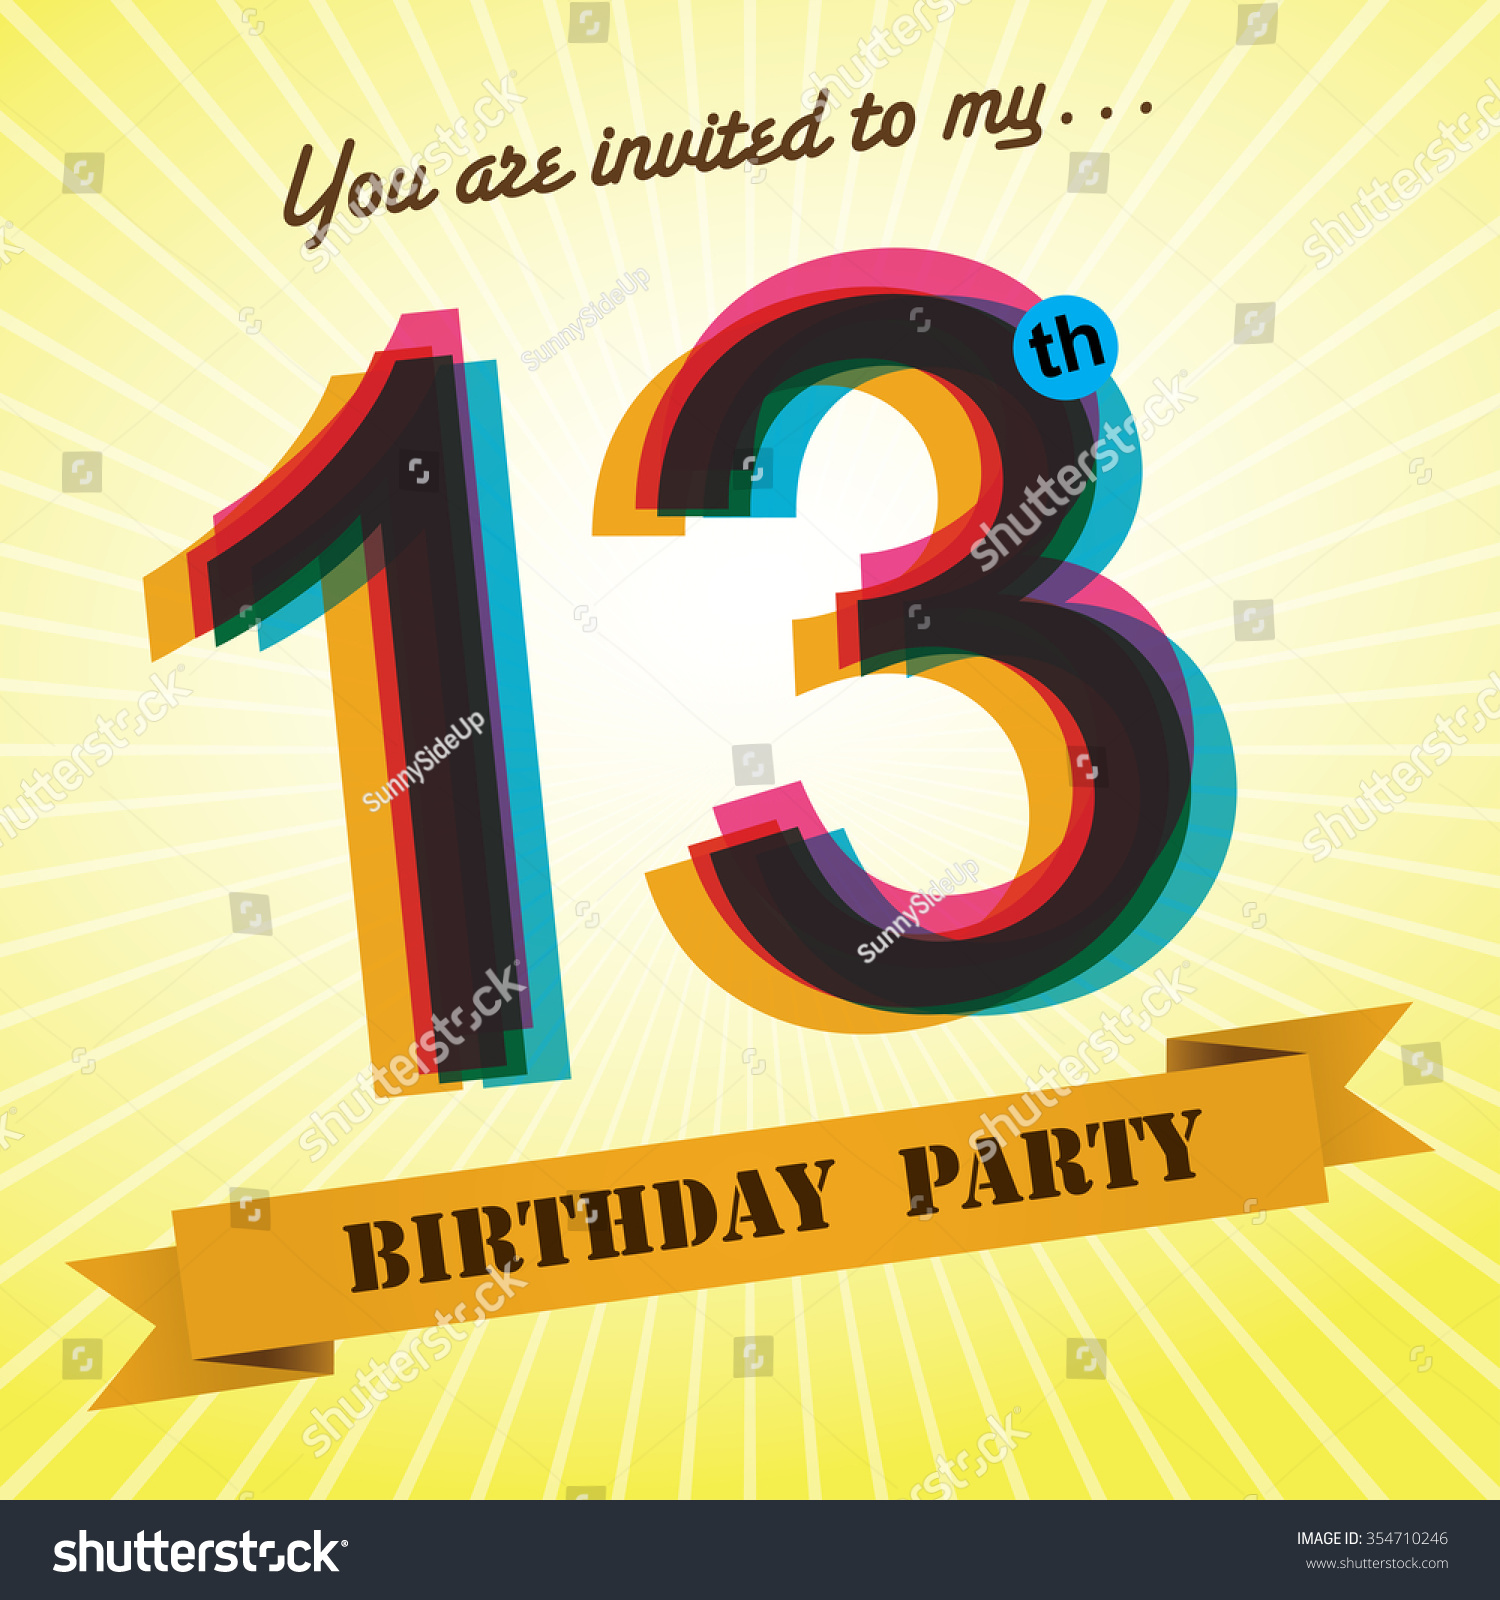 13th Birthday Party Invite Template Design Stock Vector 354710246